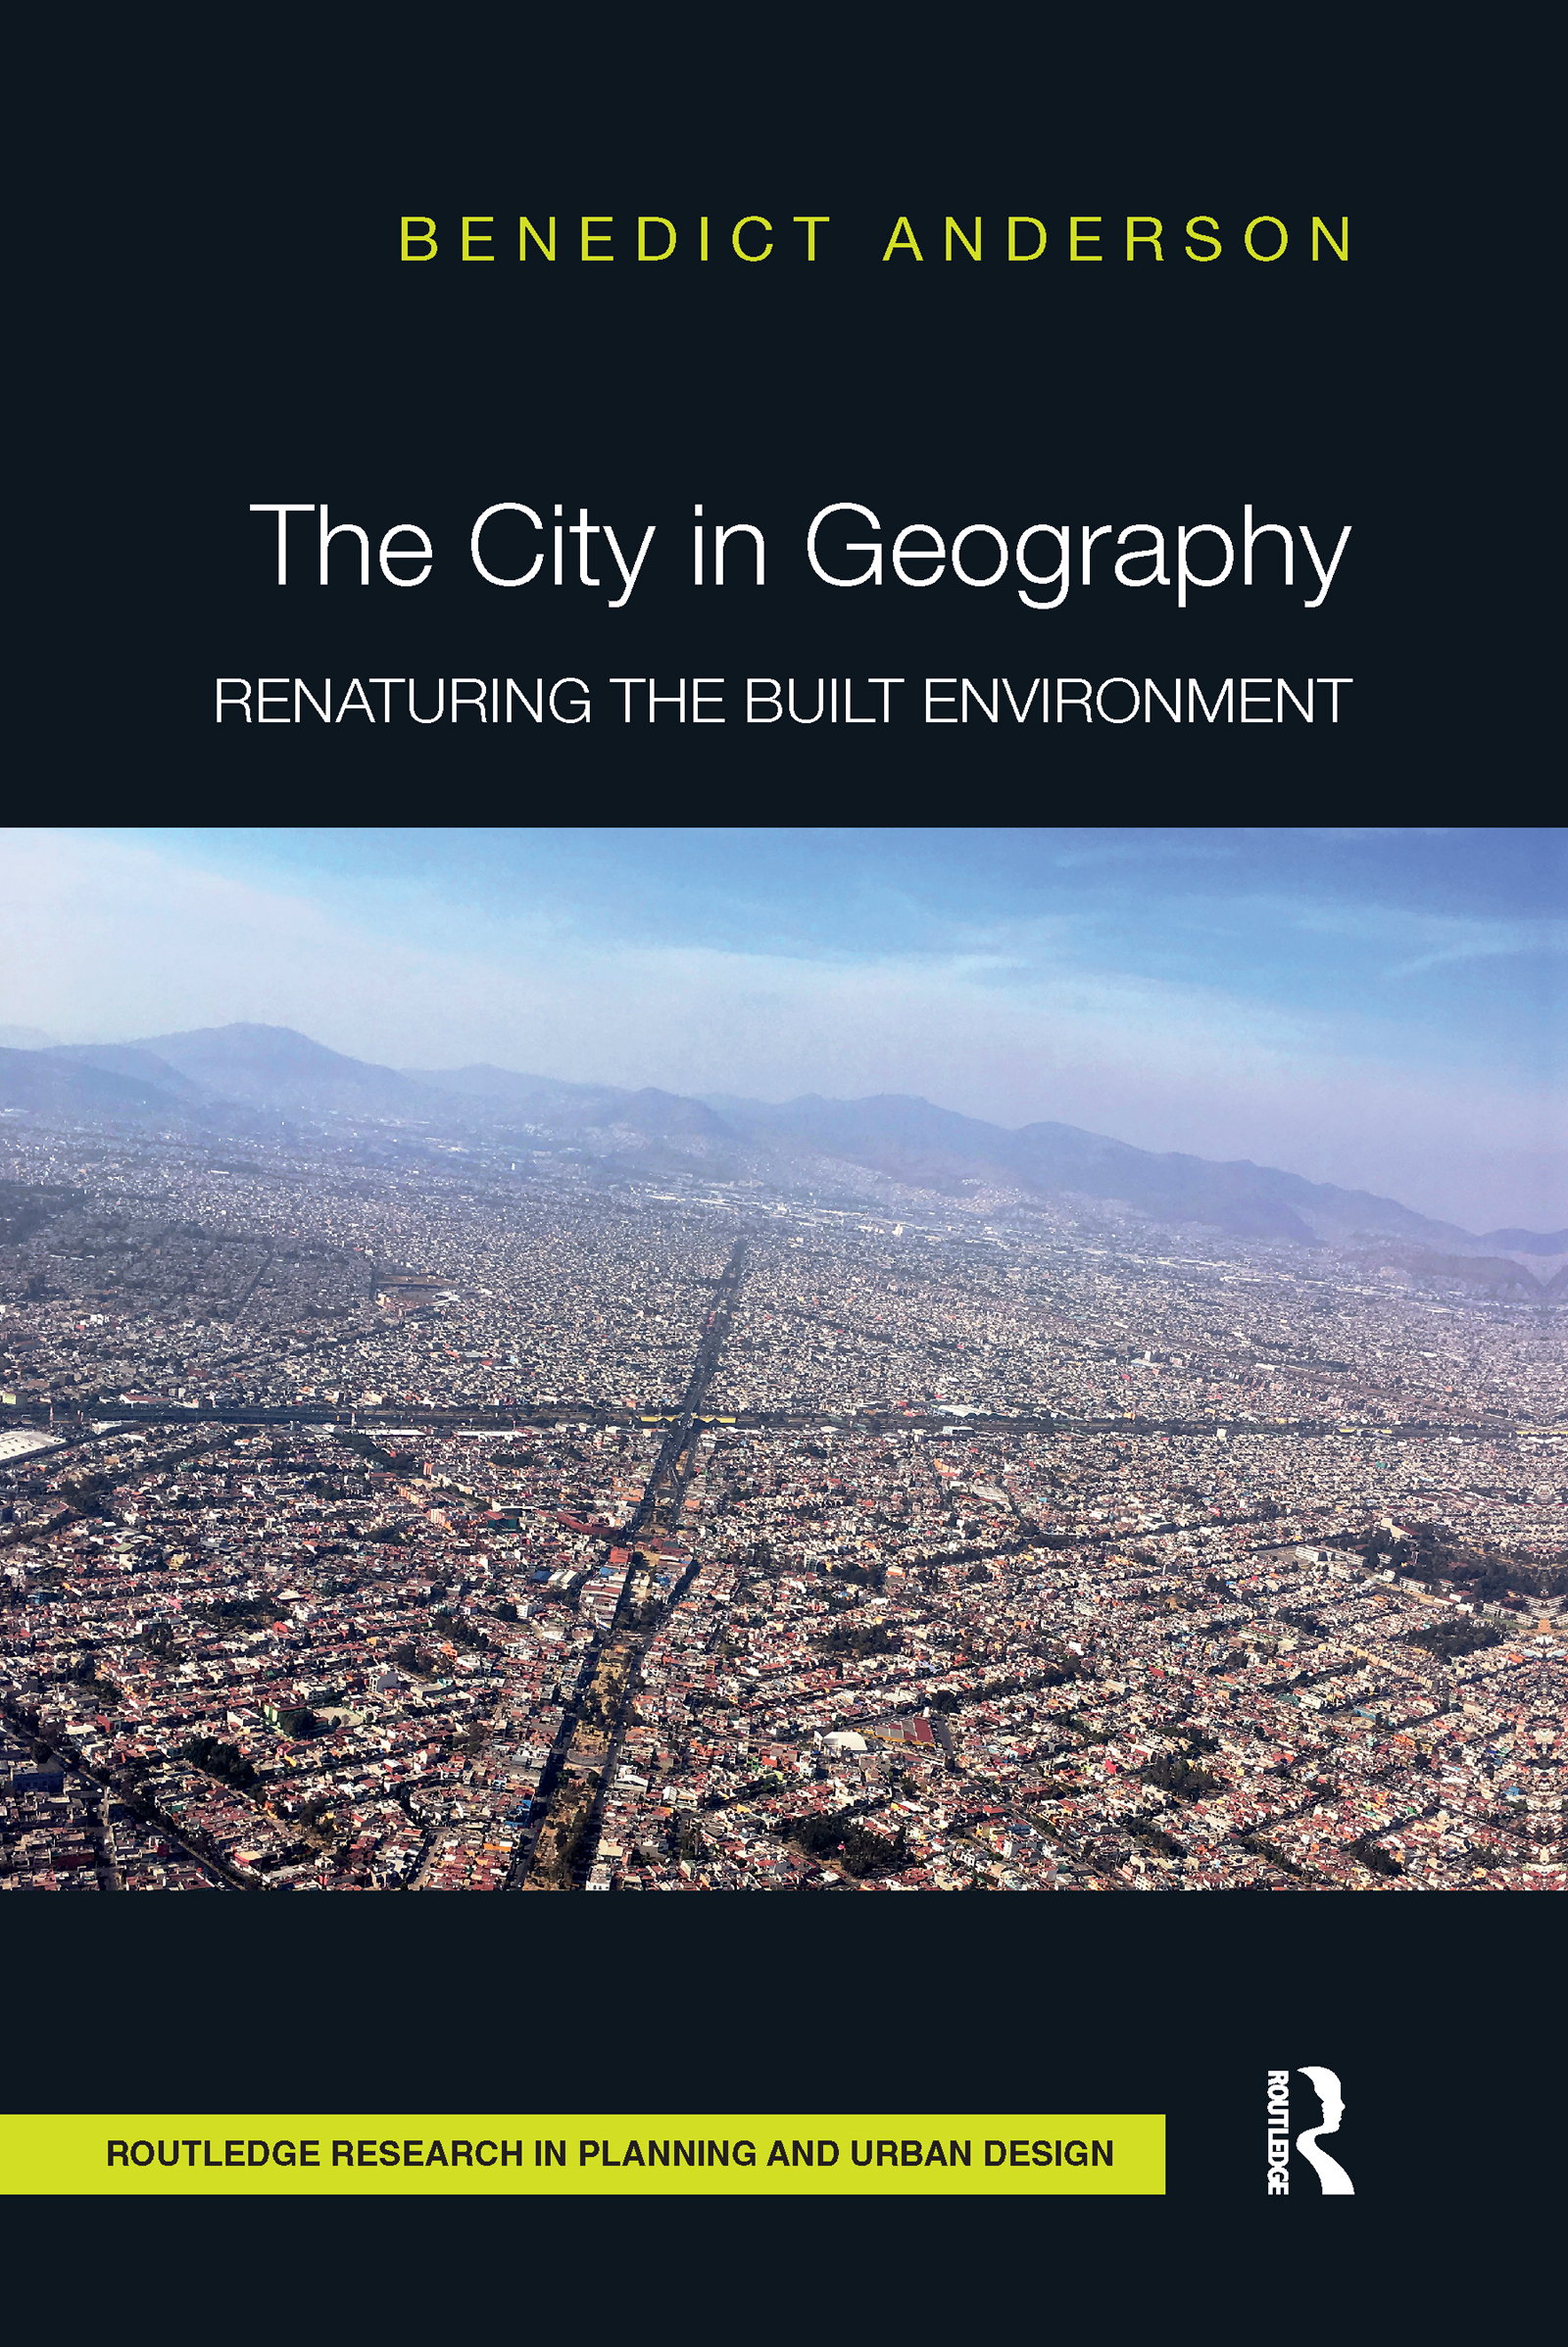 The City in Geography